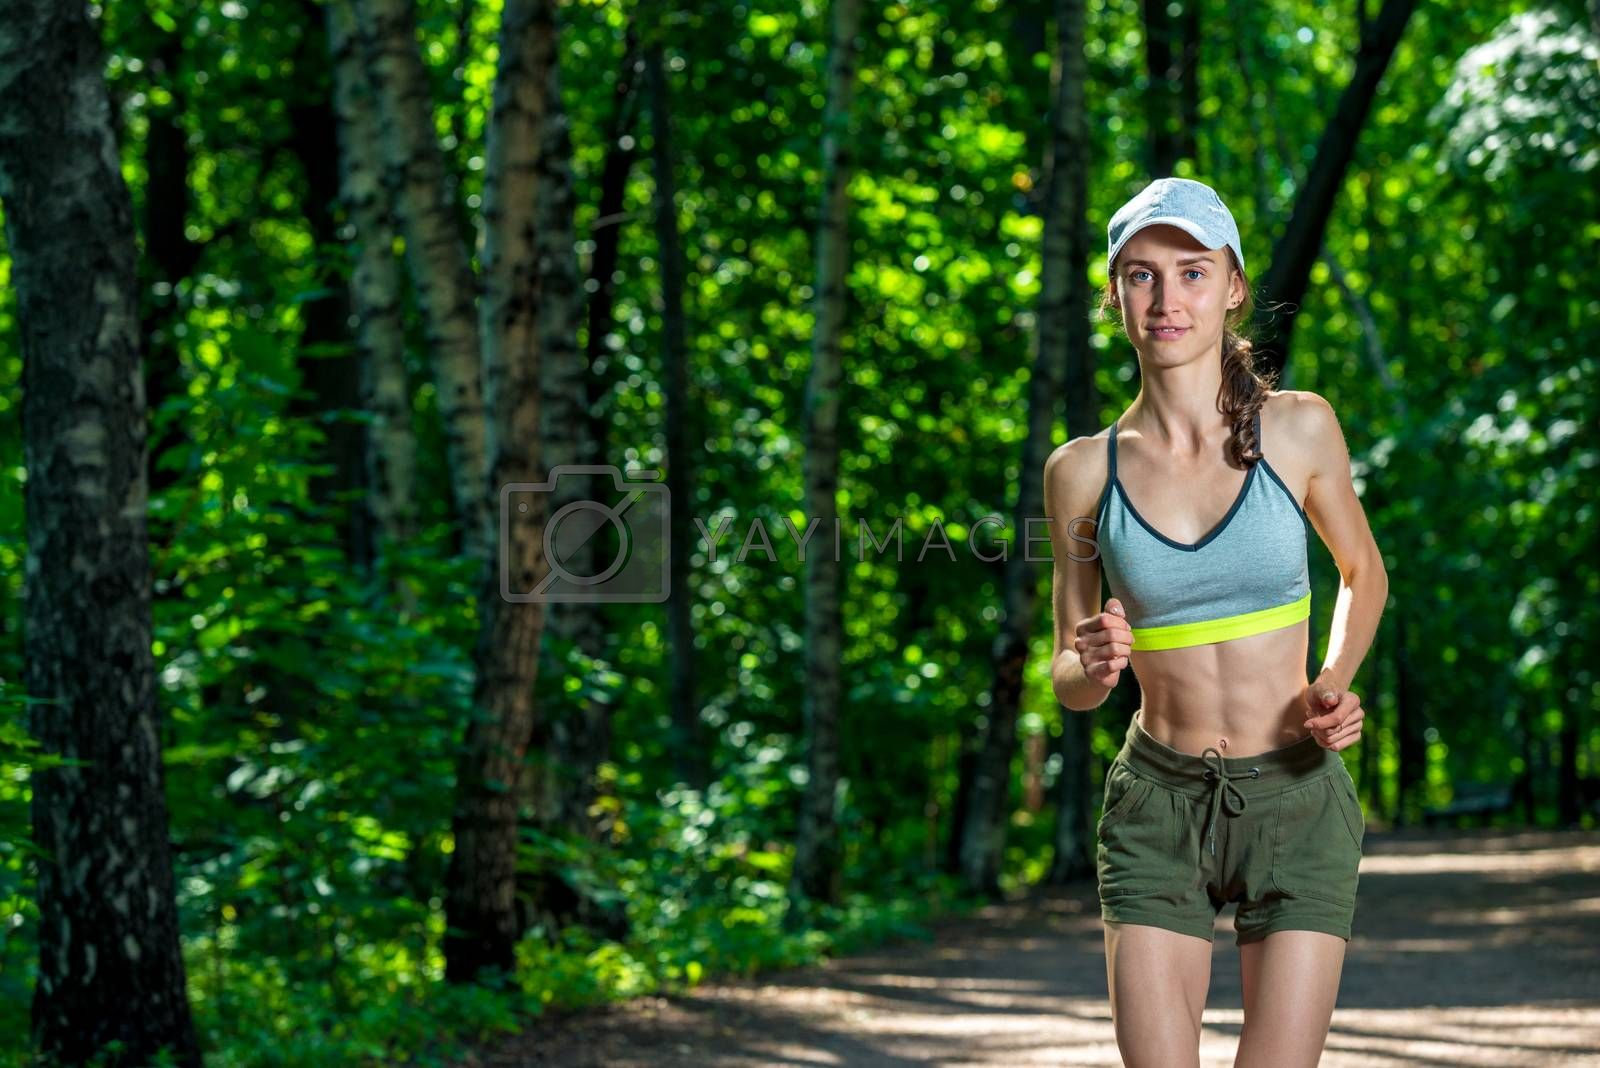 portrait of a female runner in a summer park by Labunskiy K.